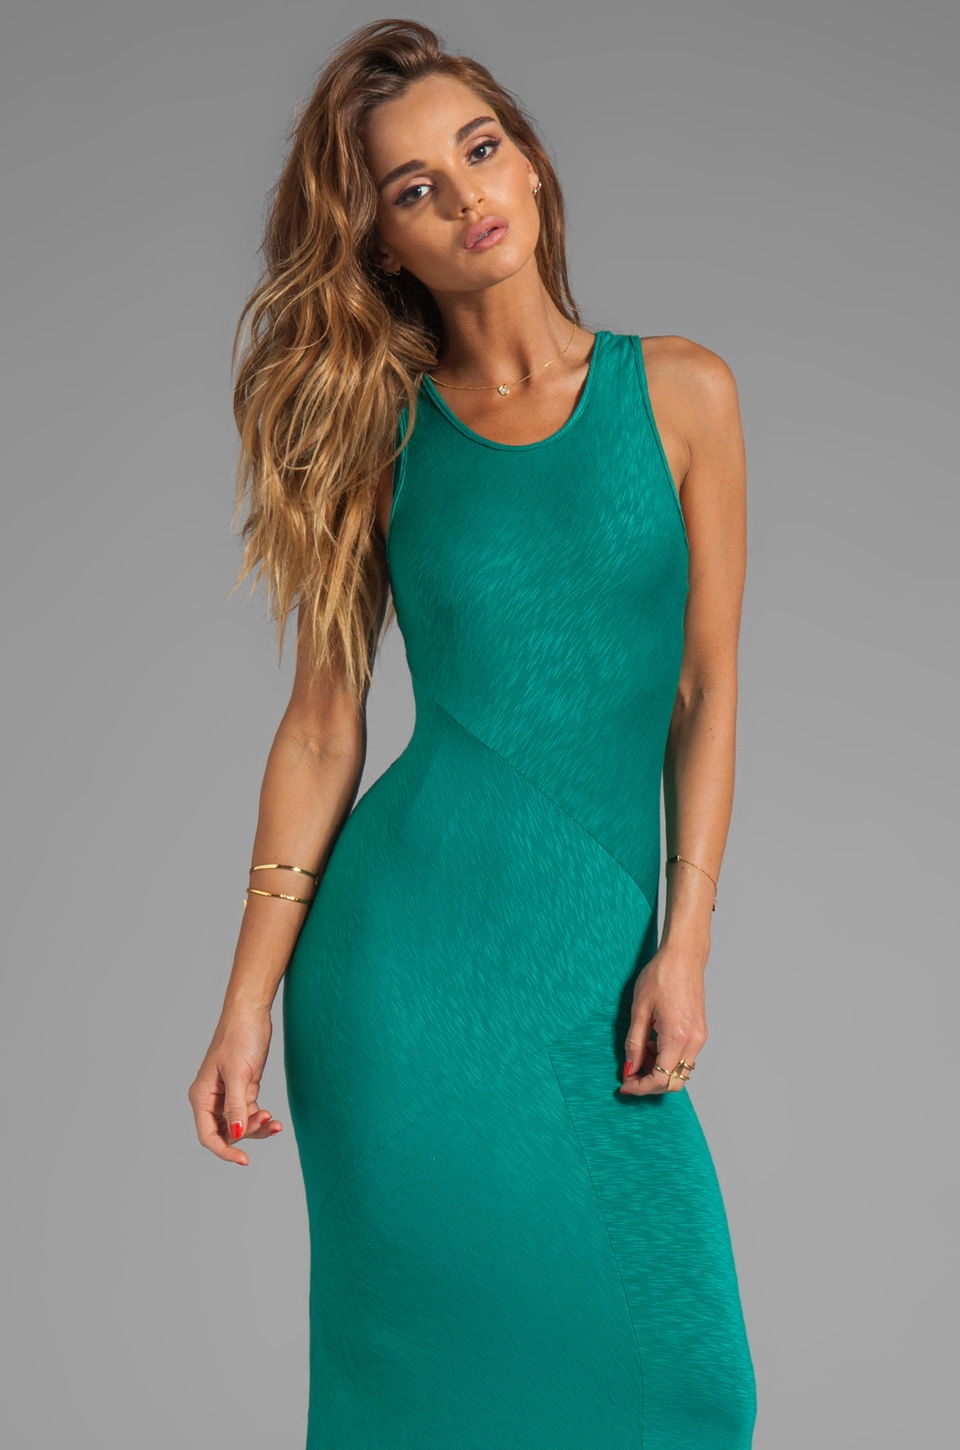 dolan Classic Slub Maxi Dress in Seaweed